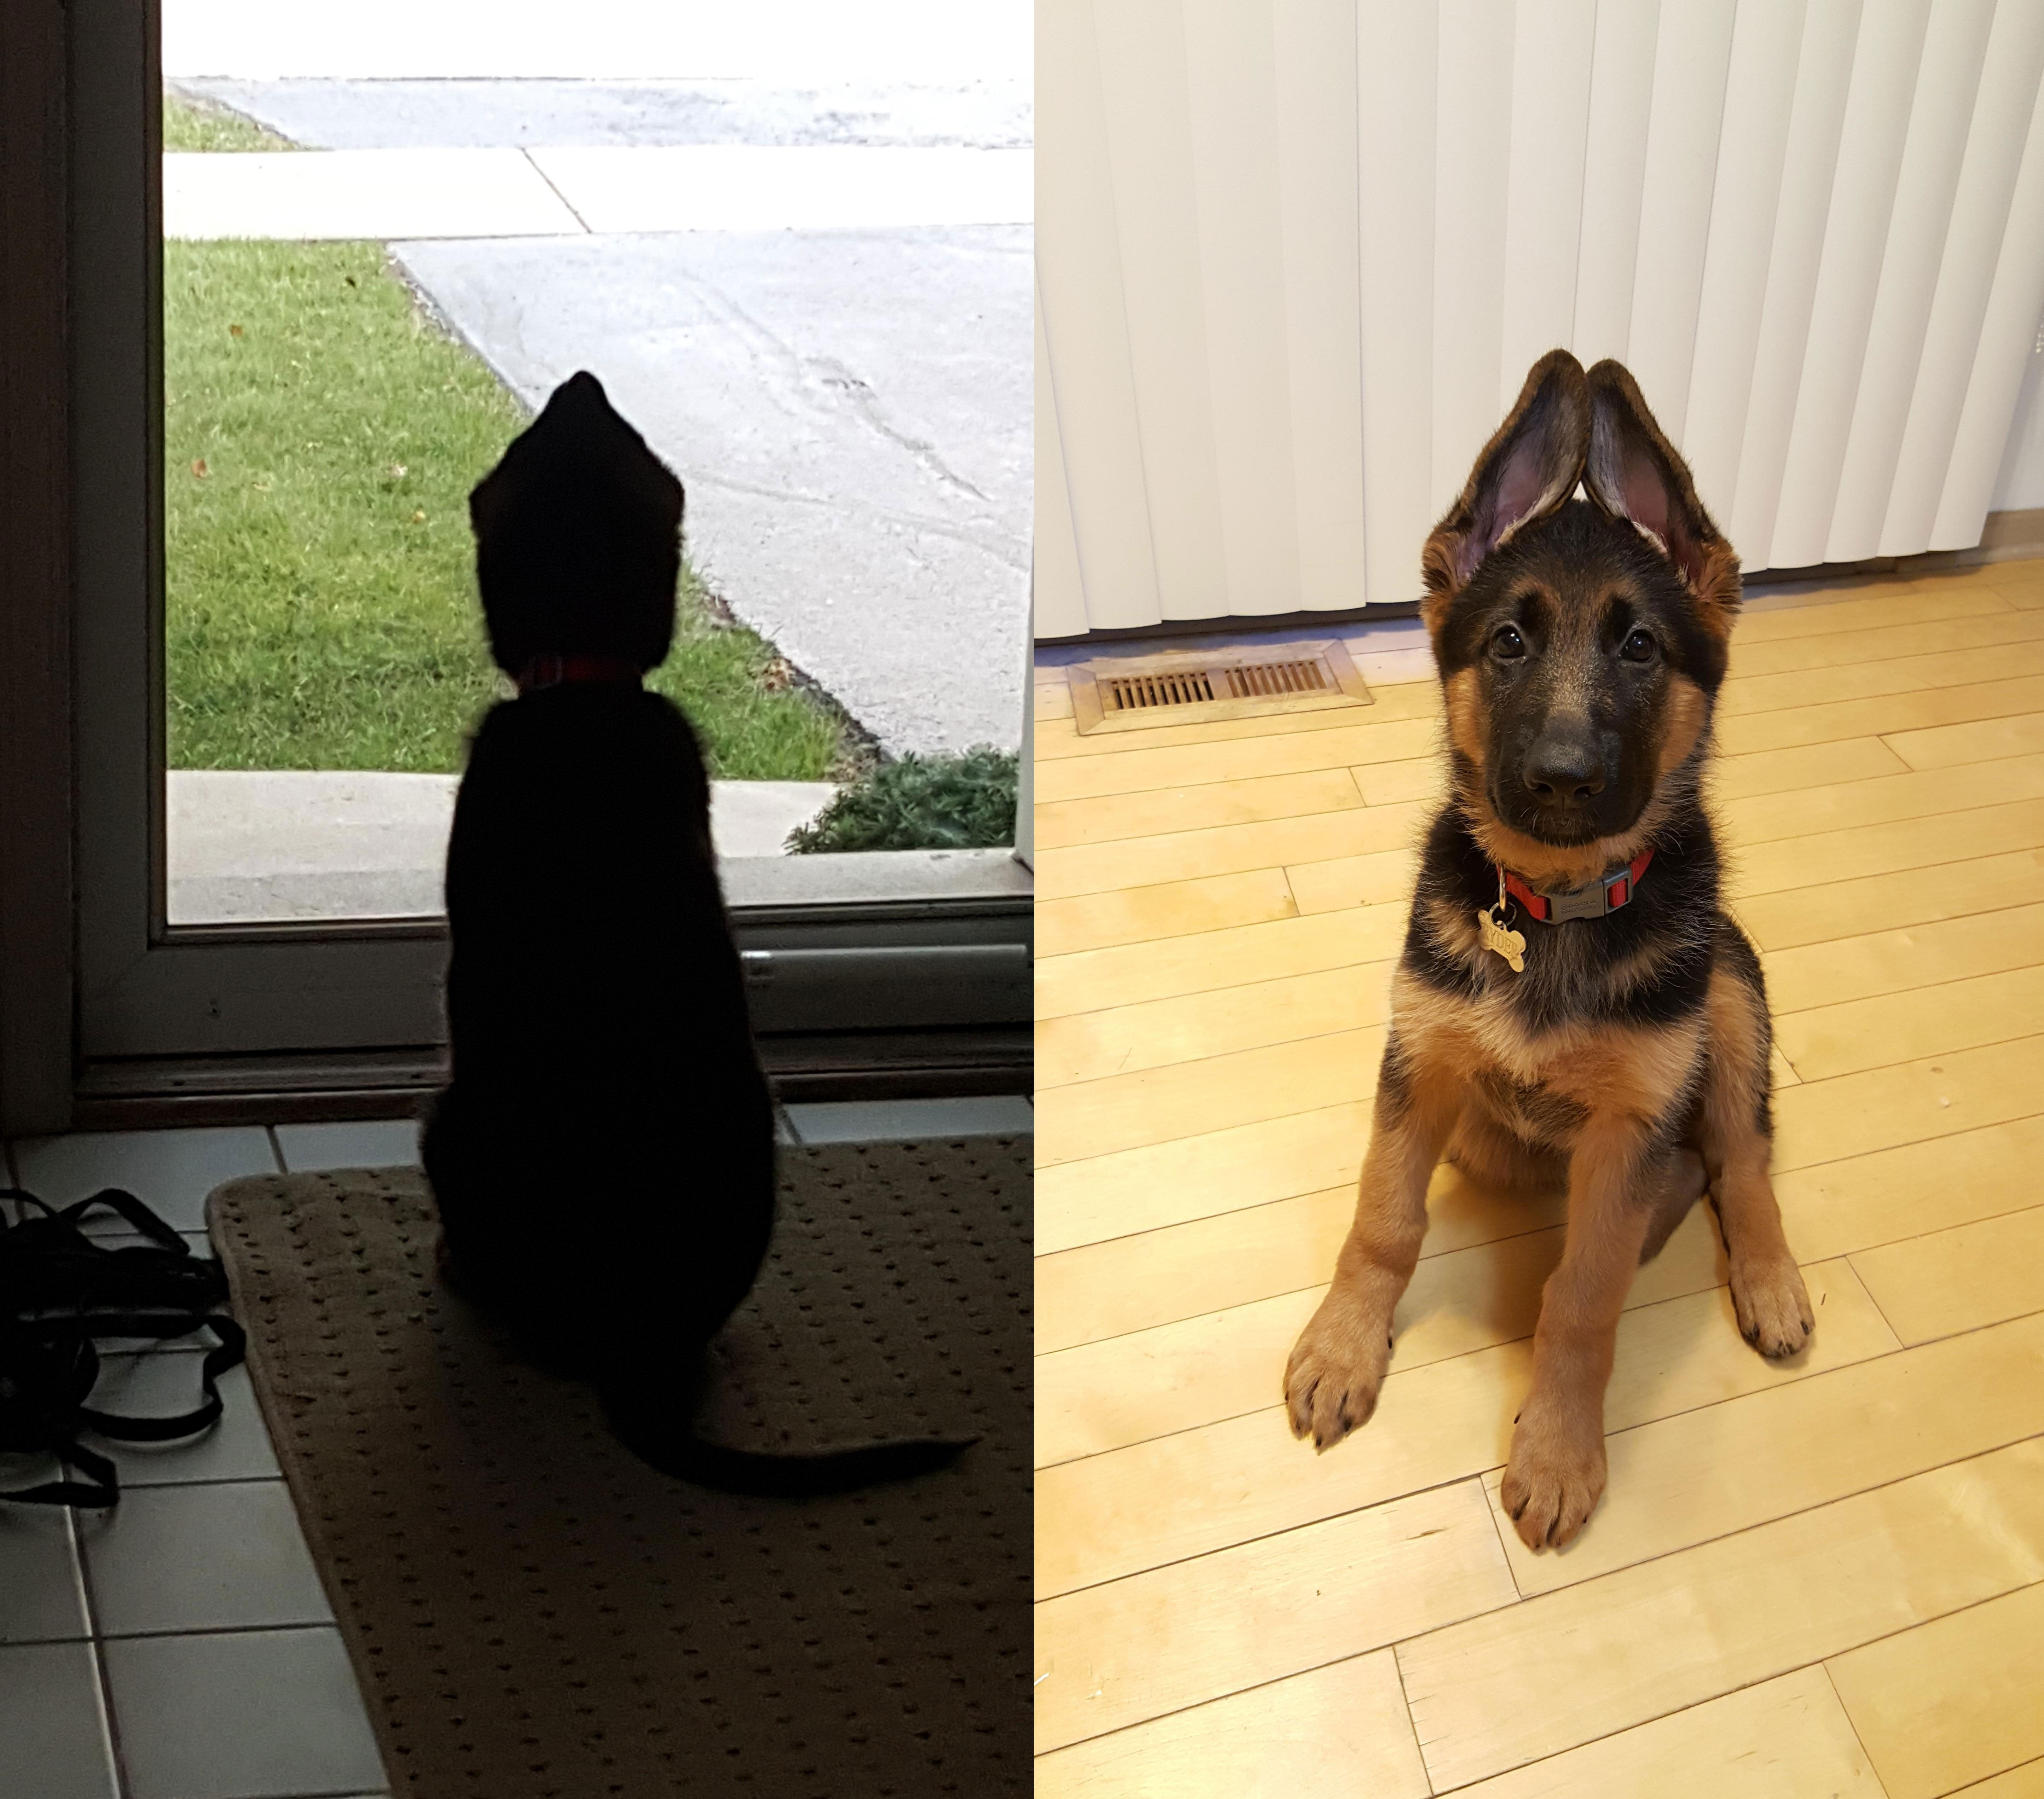 From Peychevshepherds Puppy Ear Stages The Ups Dogs